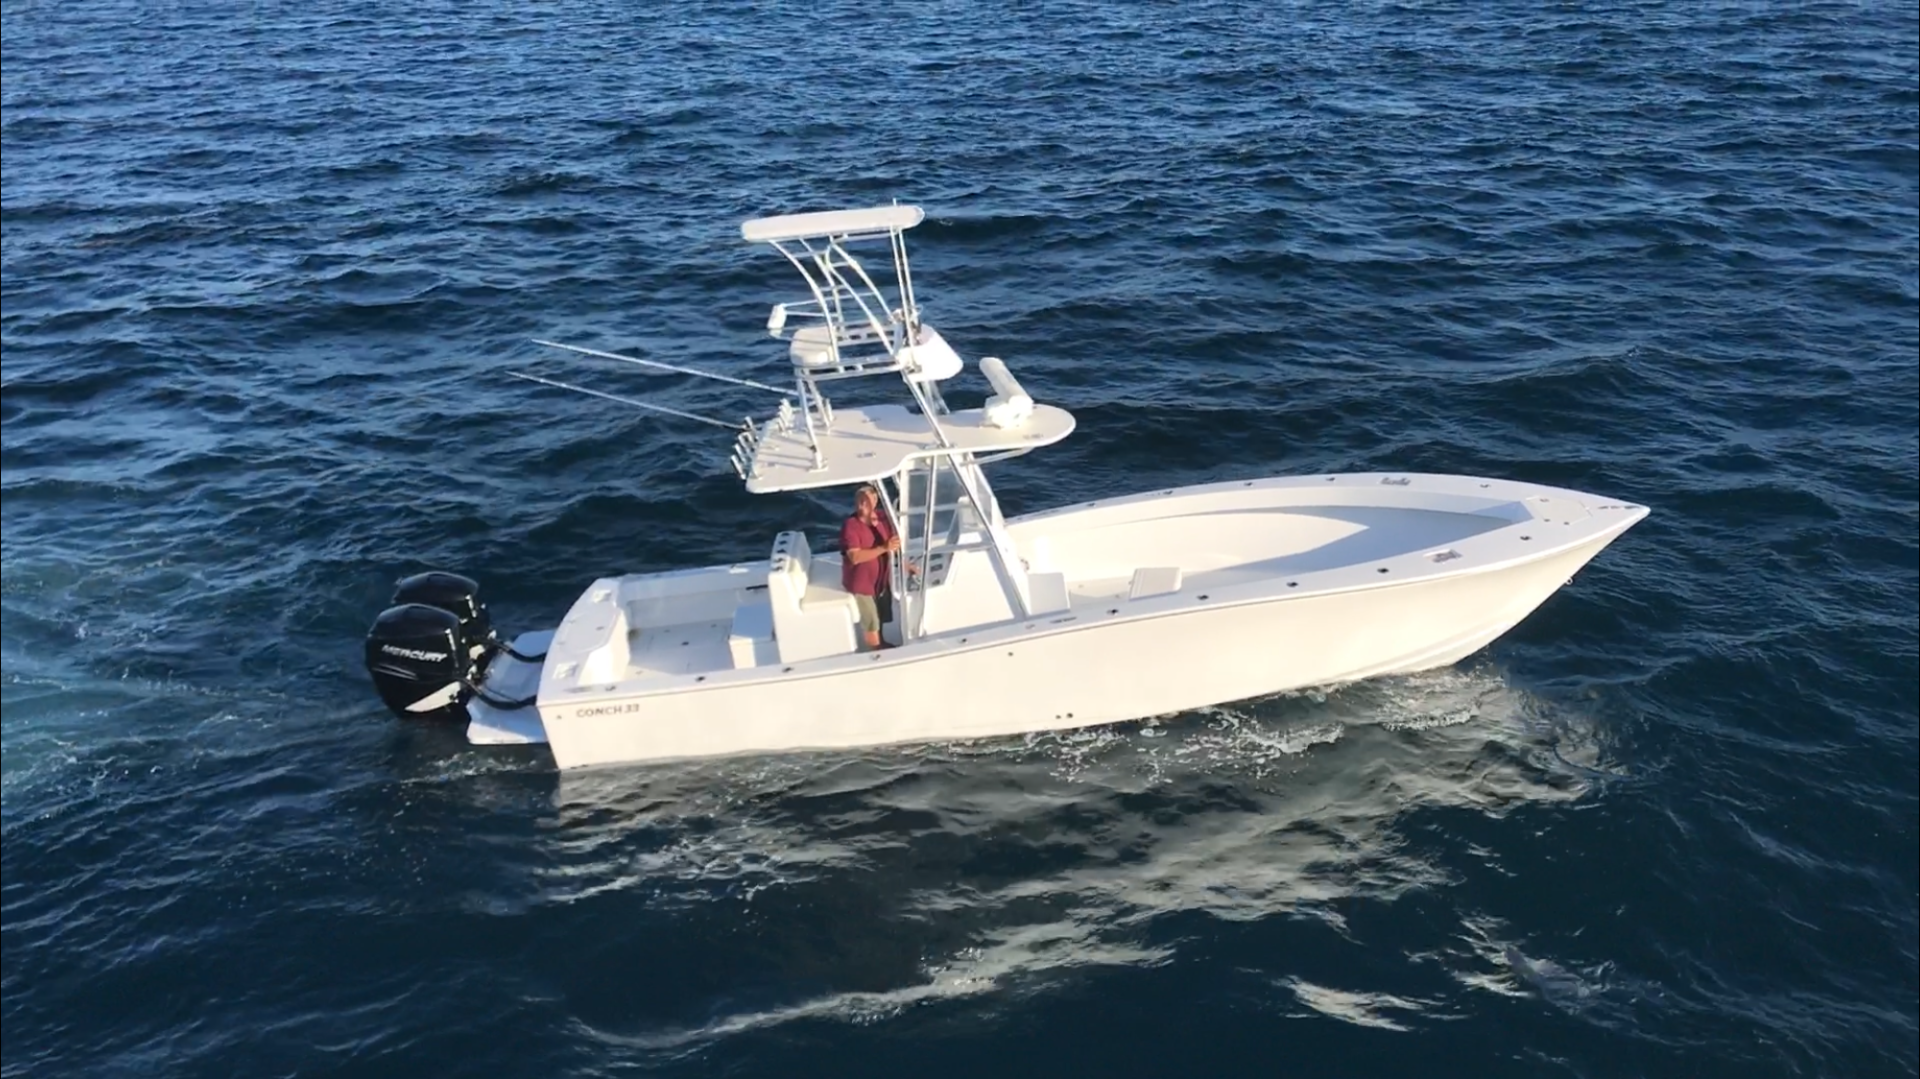 Conch-33 Center Console 2017-33 Center Console FT. LAUDERDALE-United States-1366692 | Thumbnail